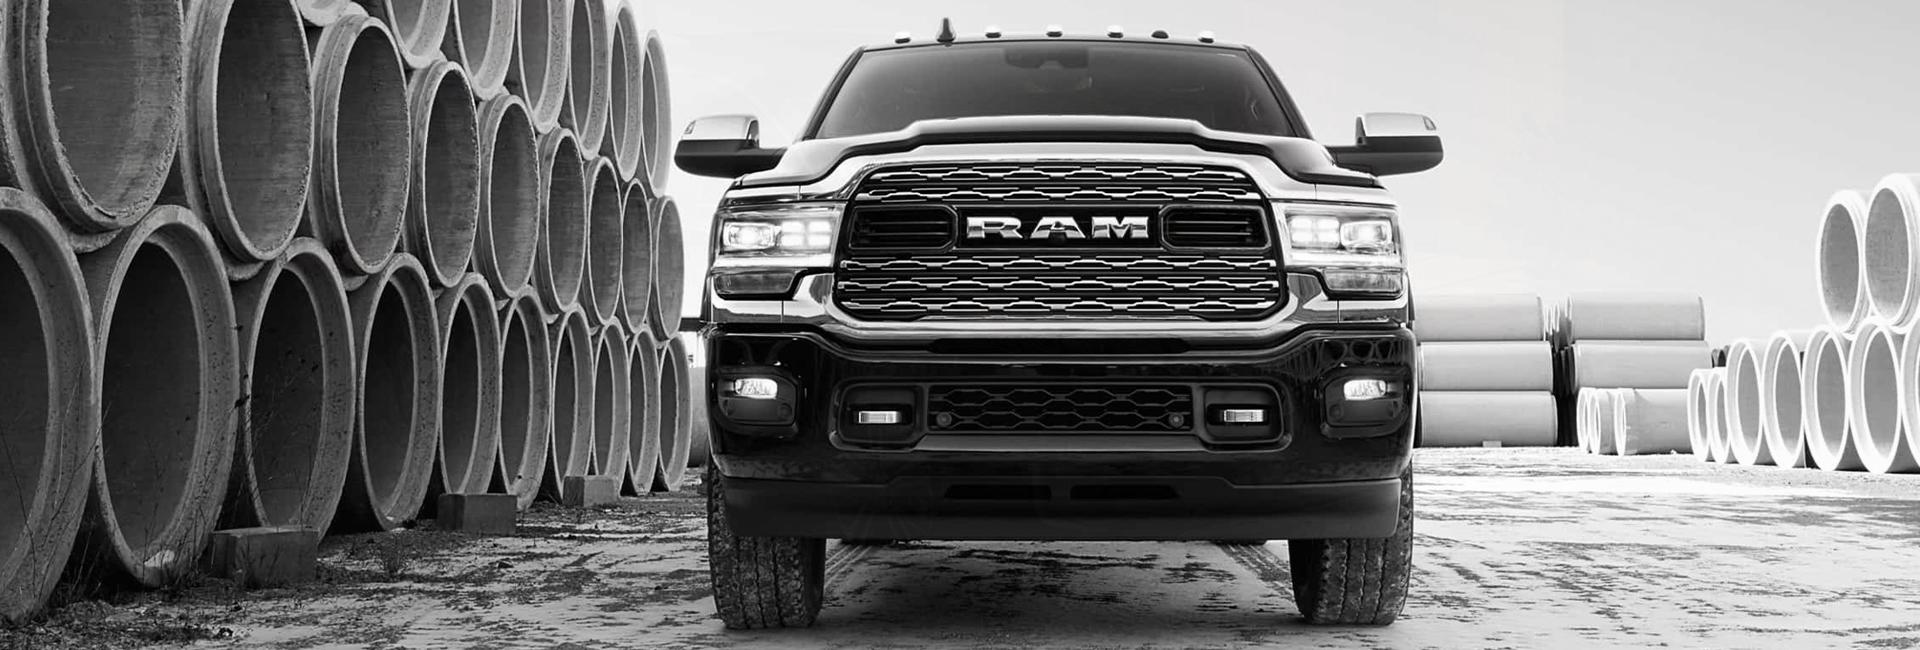 Exterior image of the 2020 RAM 2500 for sale at Spitzer Ram dealer in Cleveland Ohio